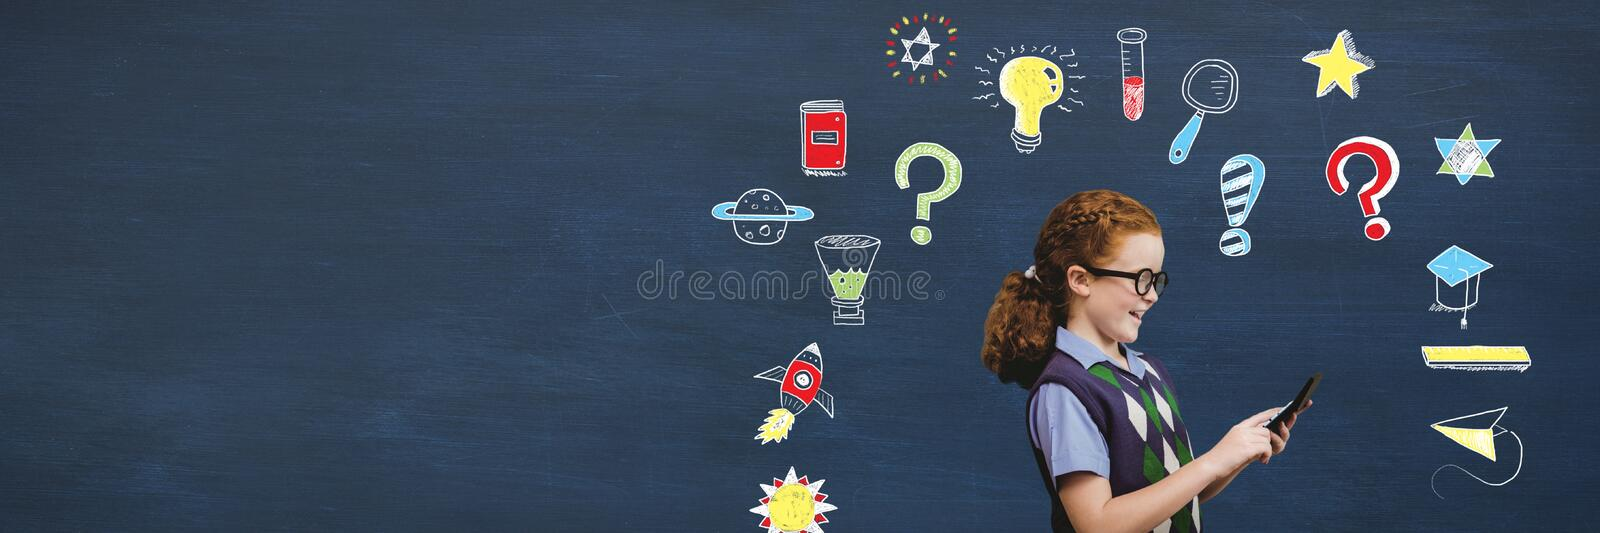 School boy and School girl holding phone and Education drawing on blackboard for school royalty free stock photo